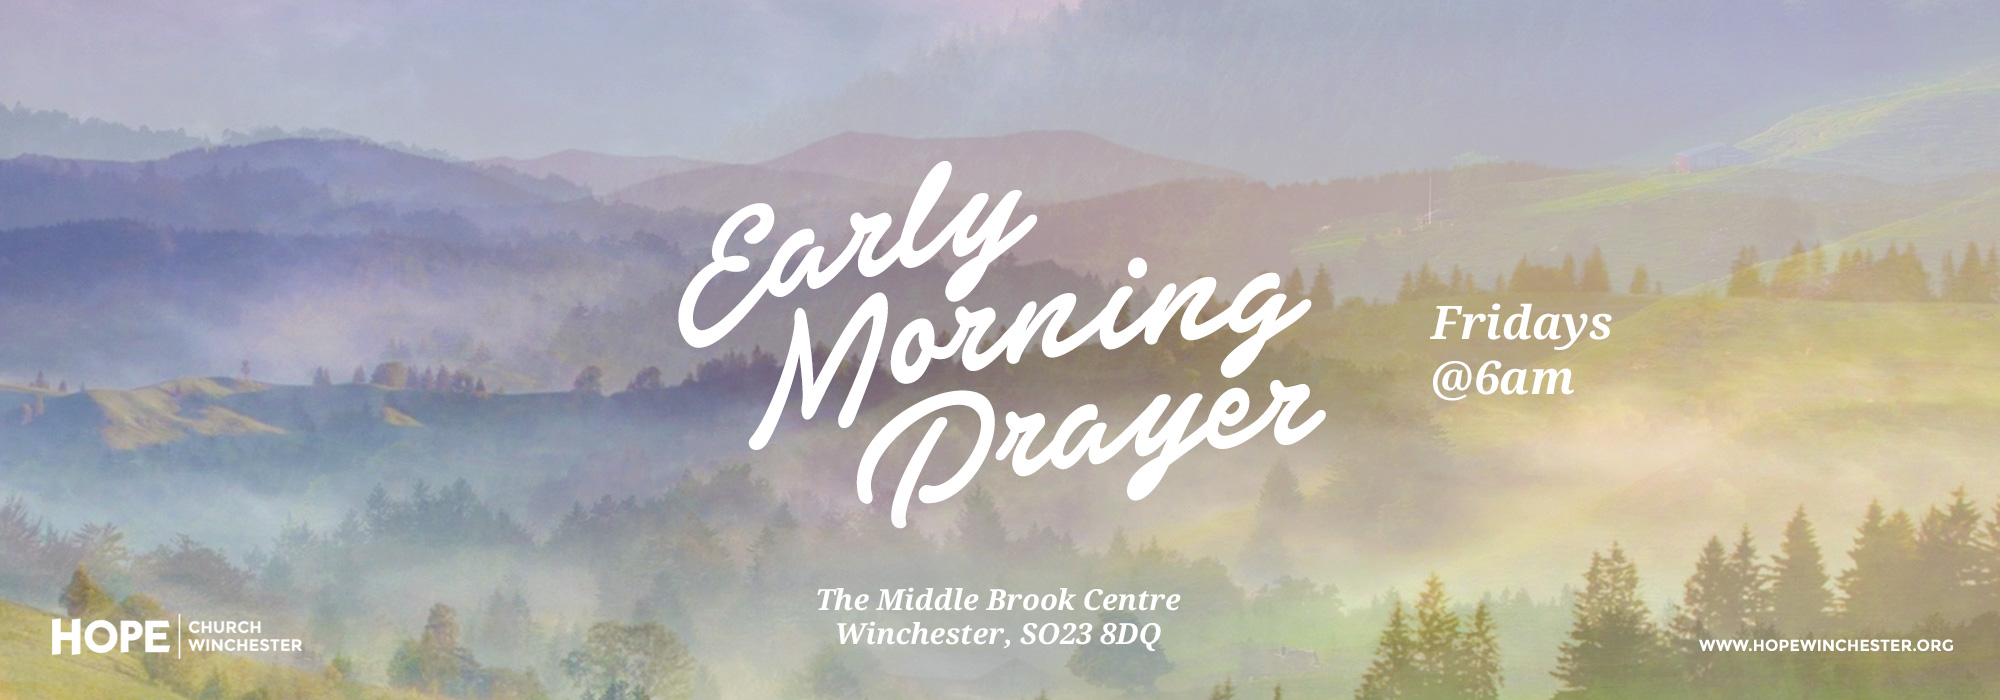 early morning prayer - photo #11